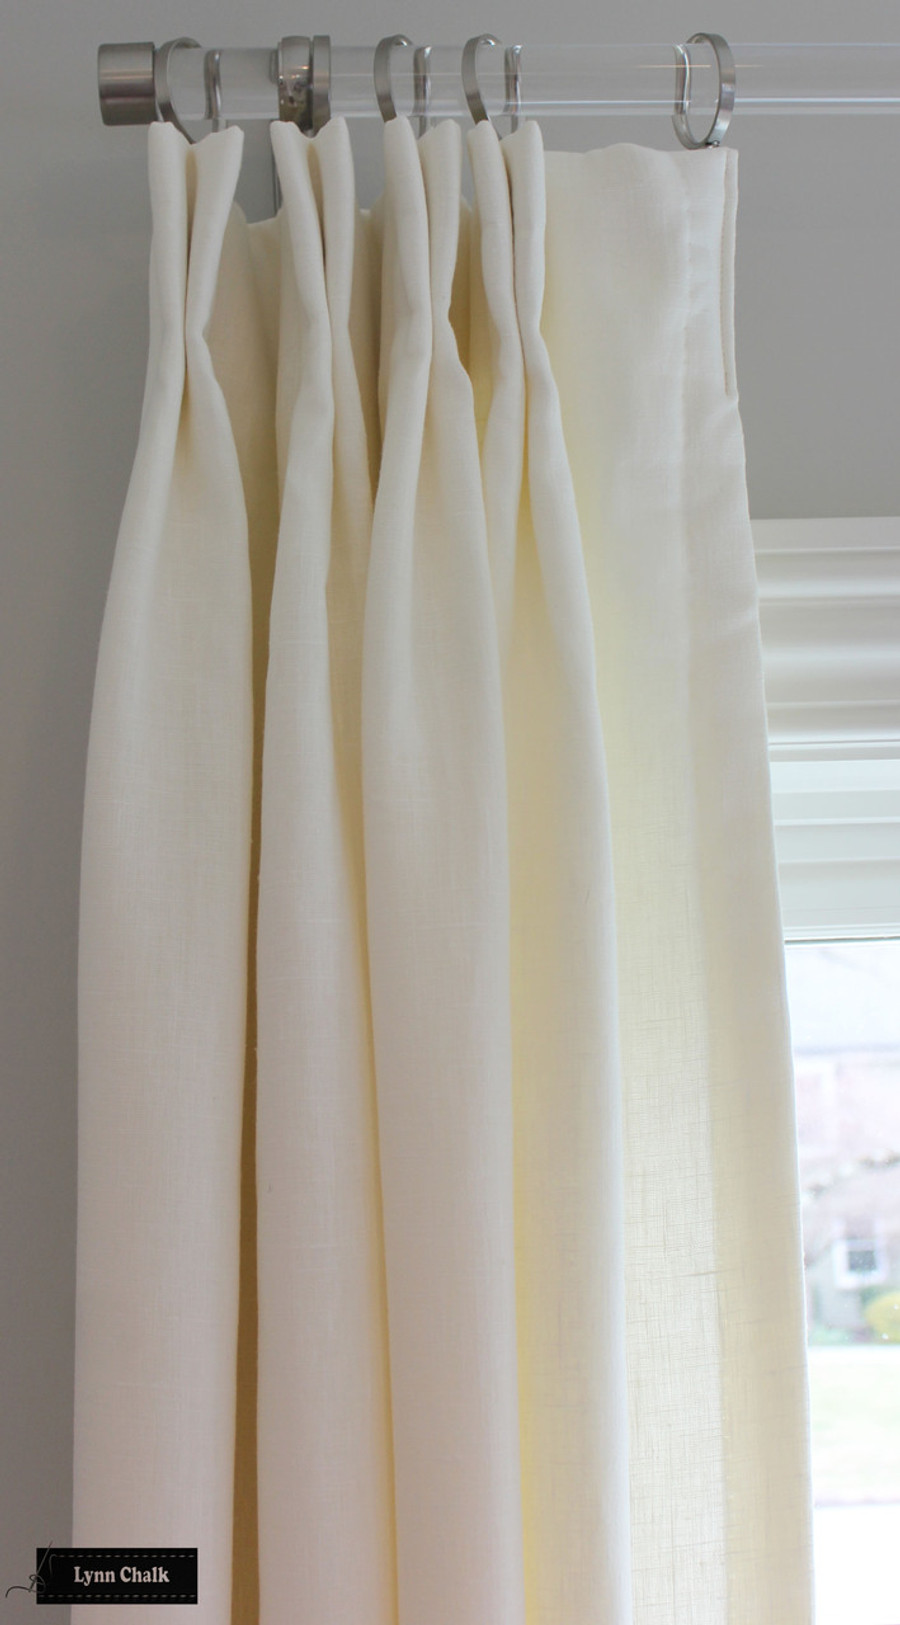 Drapes in Kravet Linen in Bleach